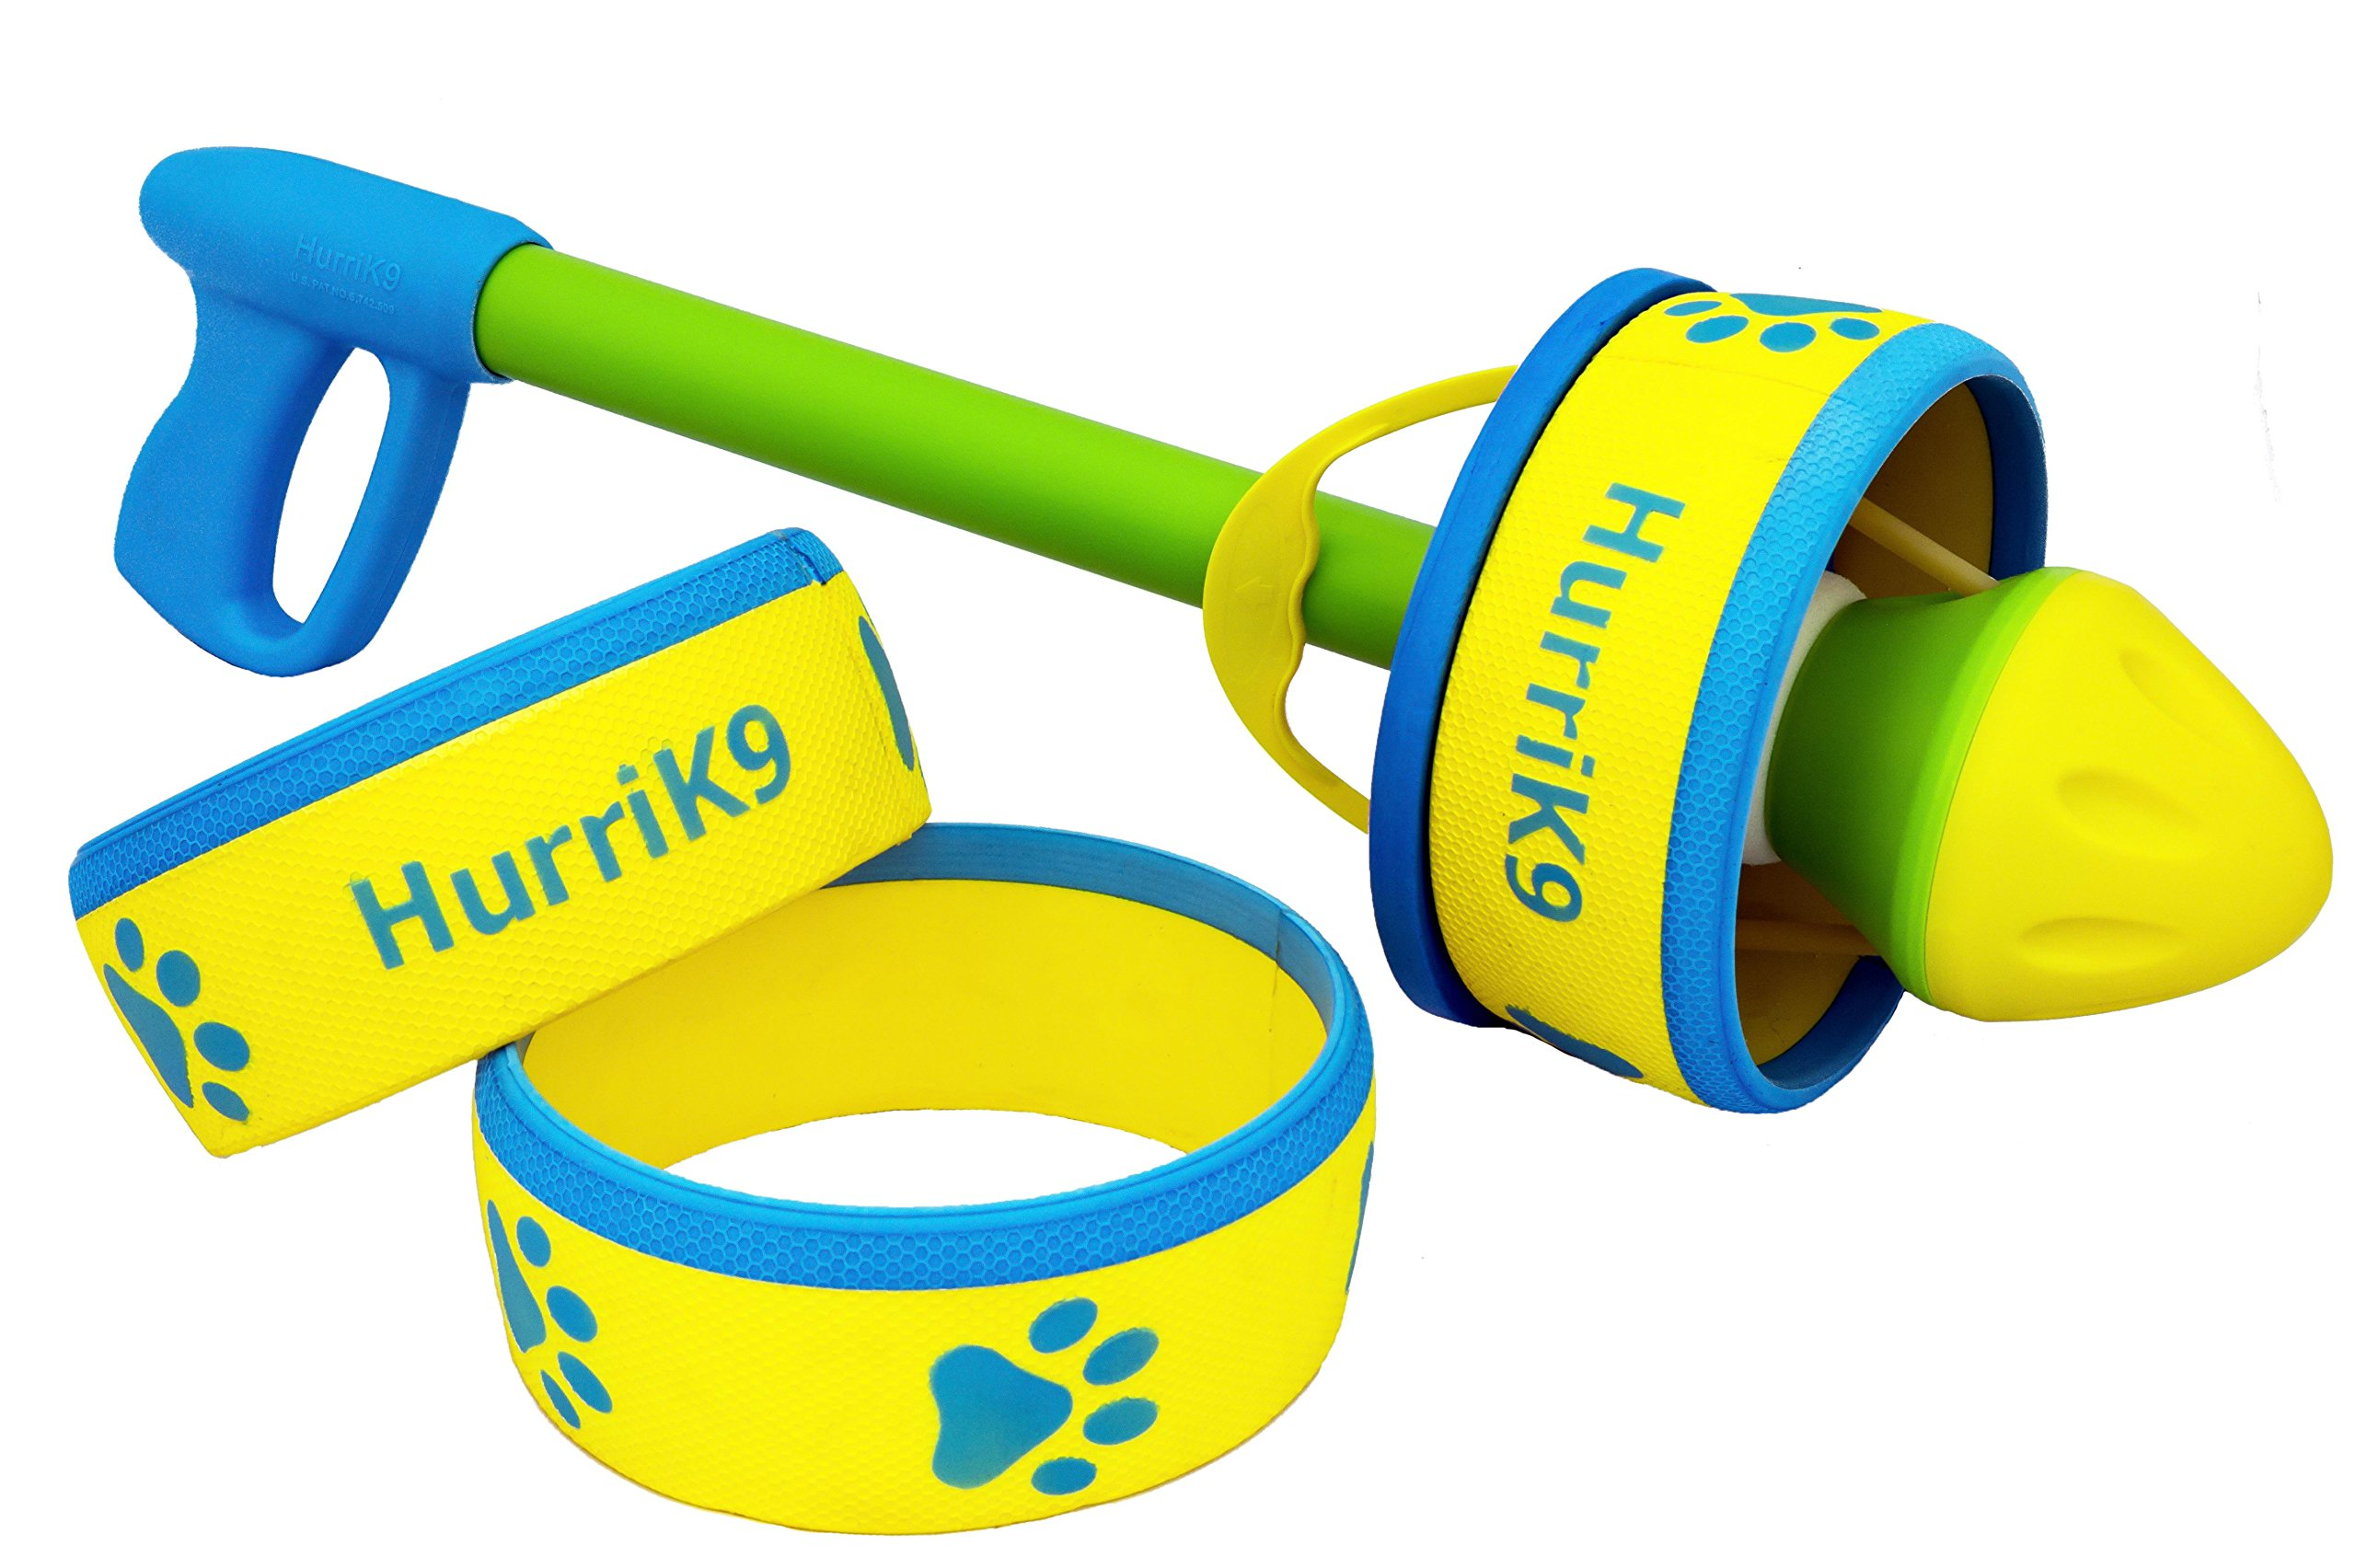 HurriK9 Foot Flying Ring for Dogs Starter Pack, Launcher Plus 3 Rings